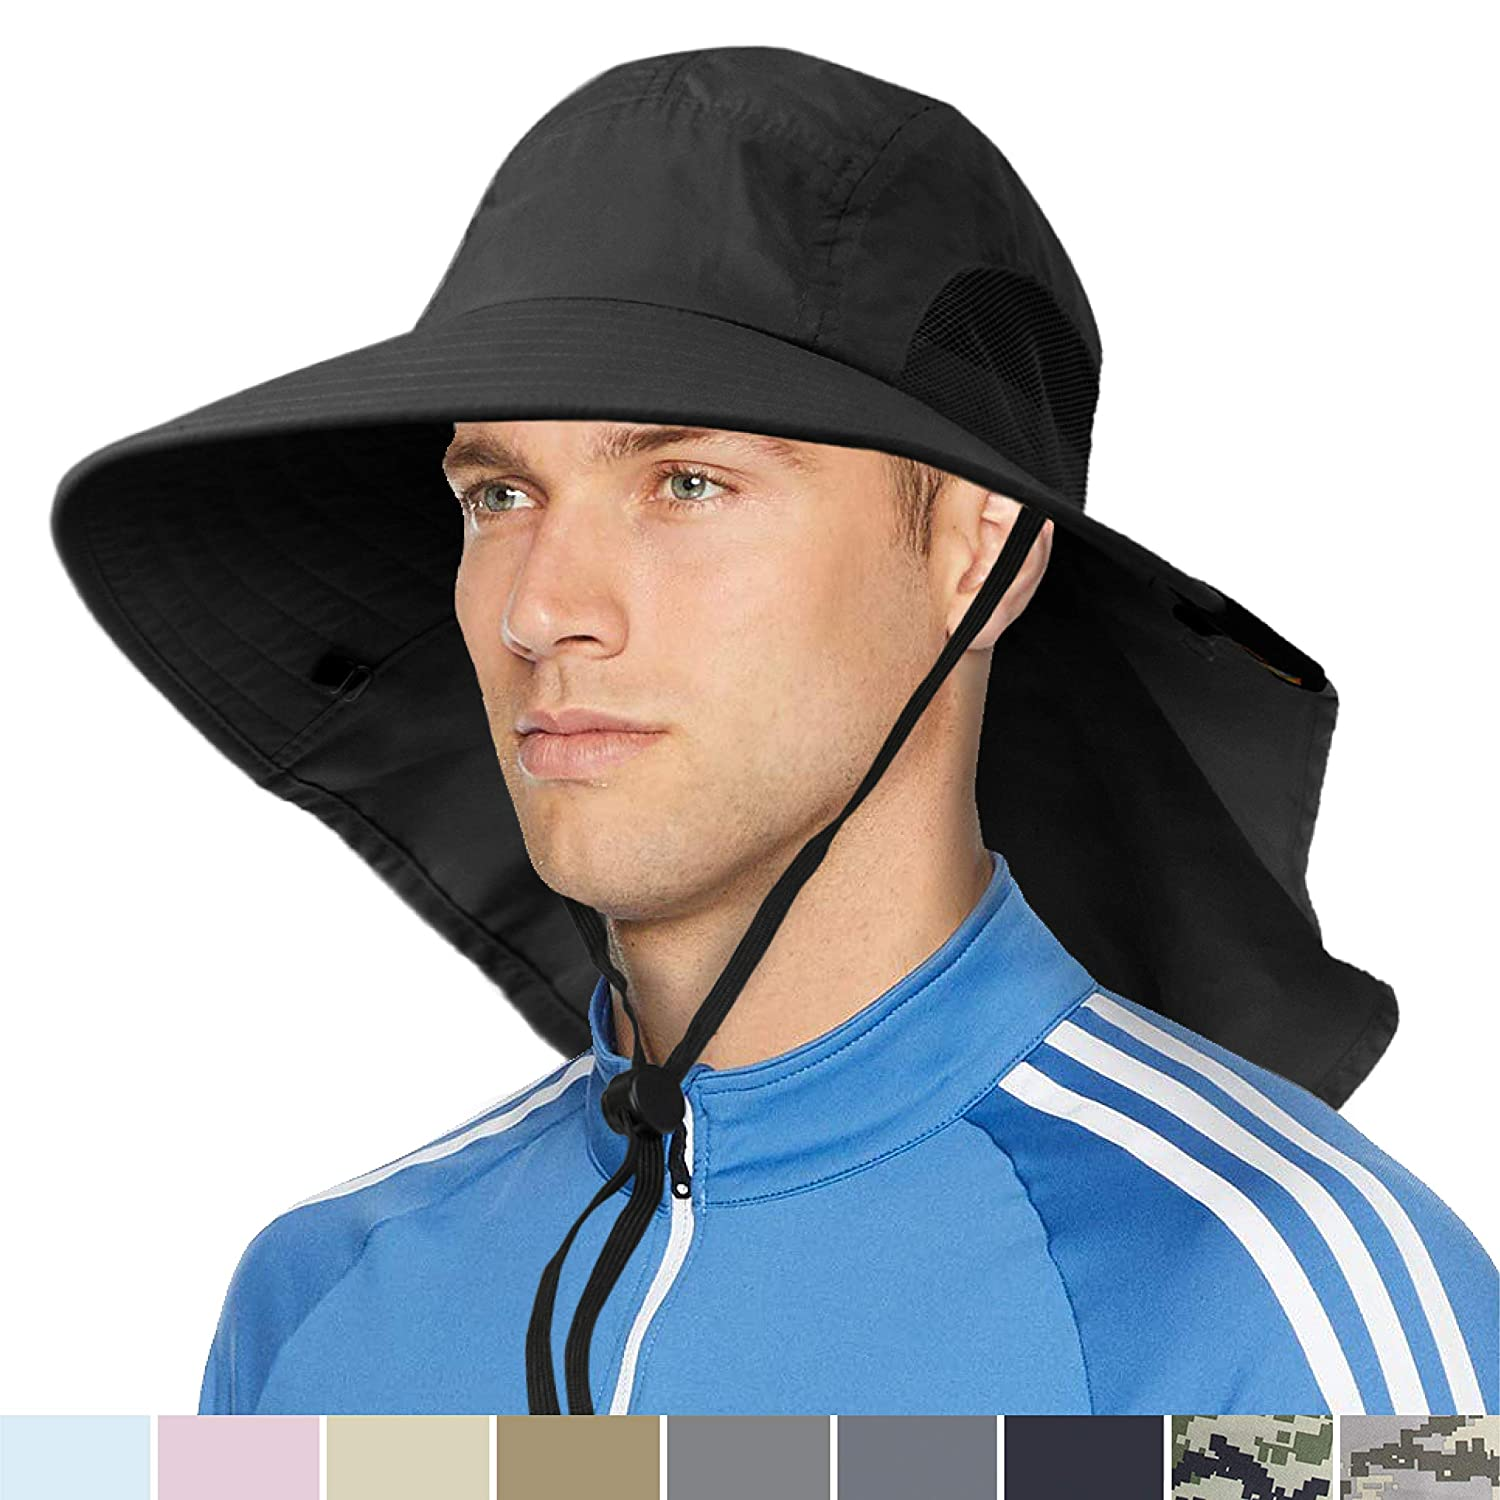 551e795e6 SUNCUBE Outdoor Wide Brim Sun Hat with Neck Cover Flap | Men, Women Summer  Sun Protection Hat UPF 50+ for Hiking, Fishing, Gardening | Breathable, ...